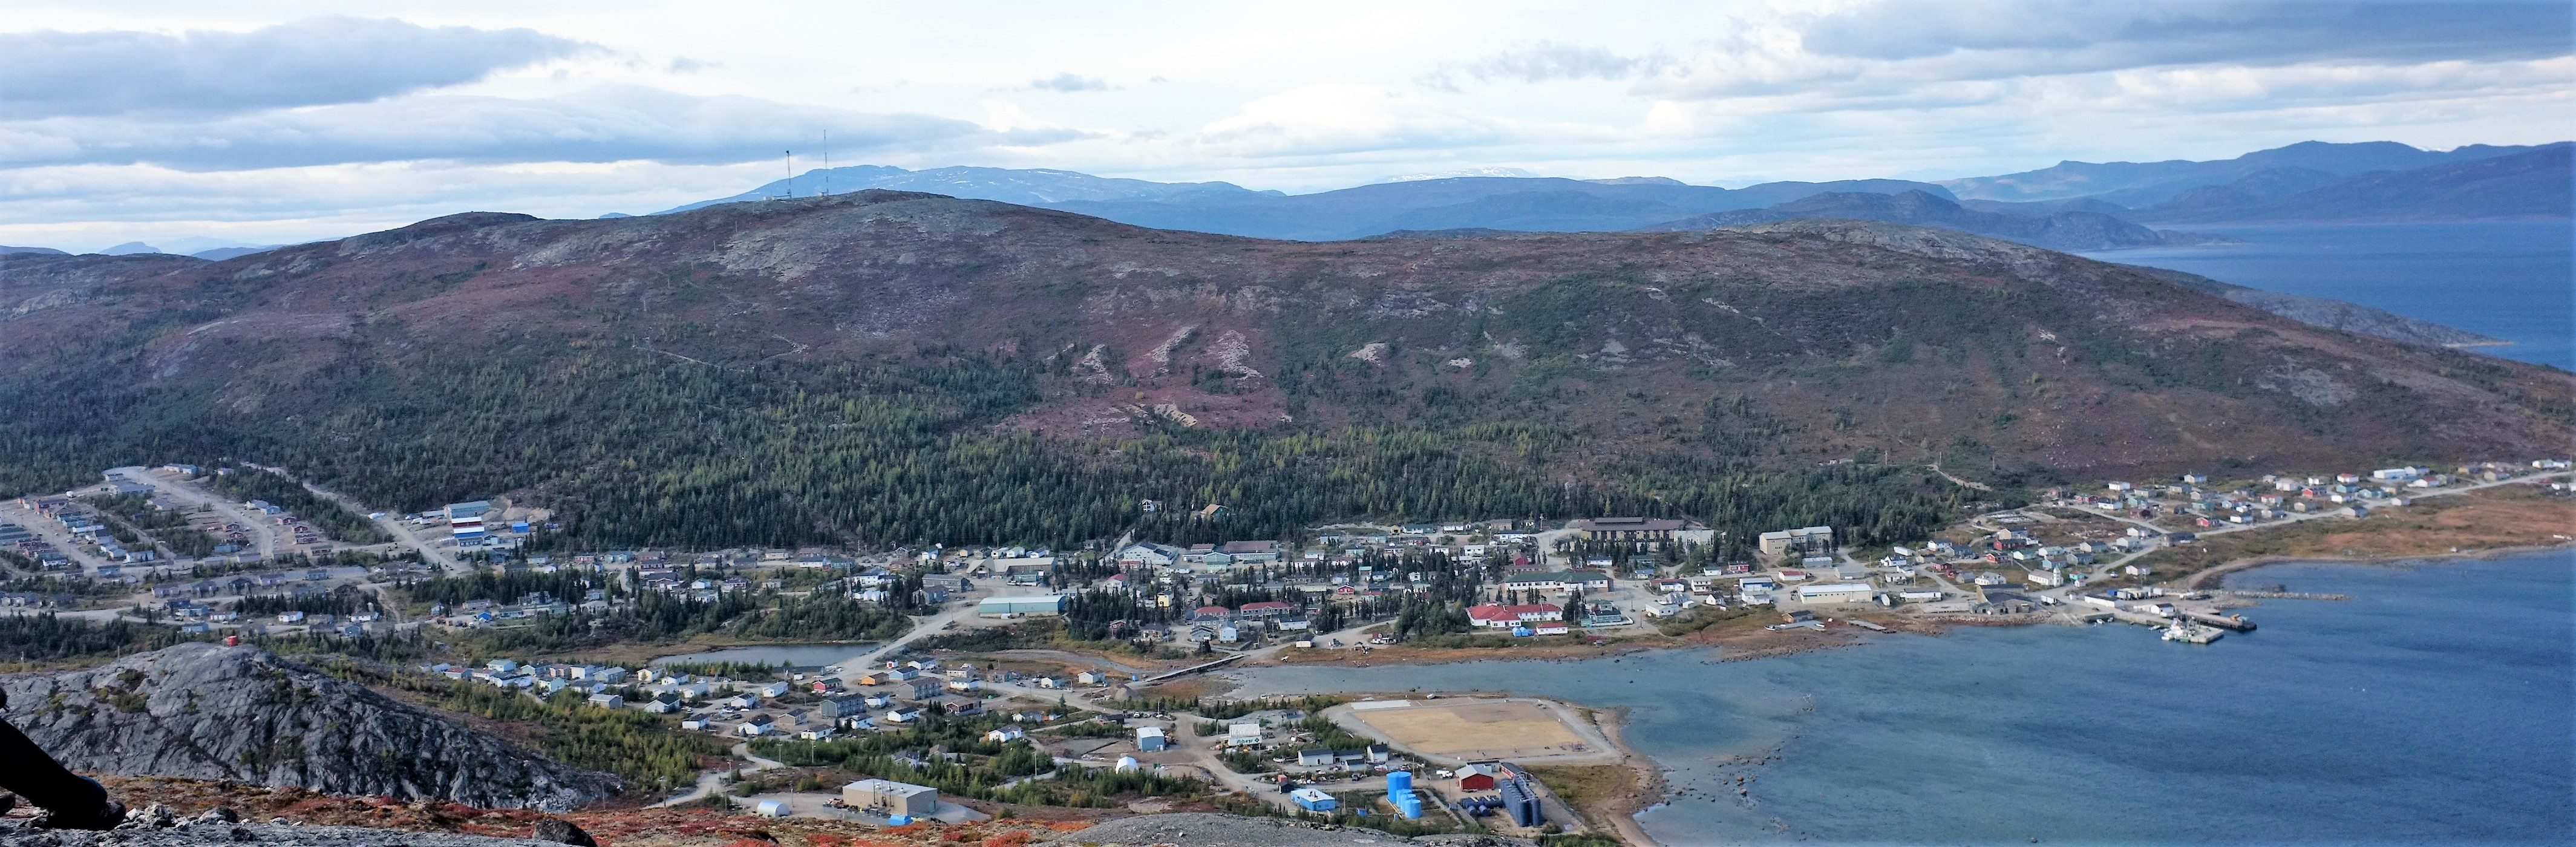 File:Nain, NL as viewed from Mt. Sophie.jpg - Wikimedia